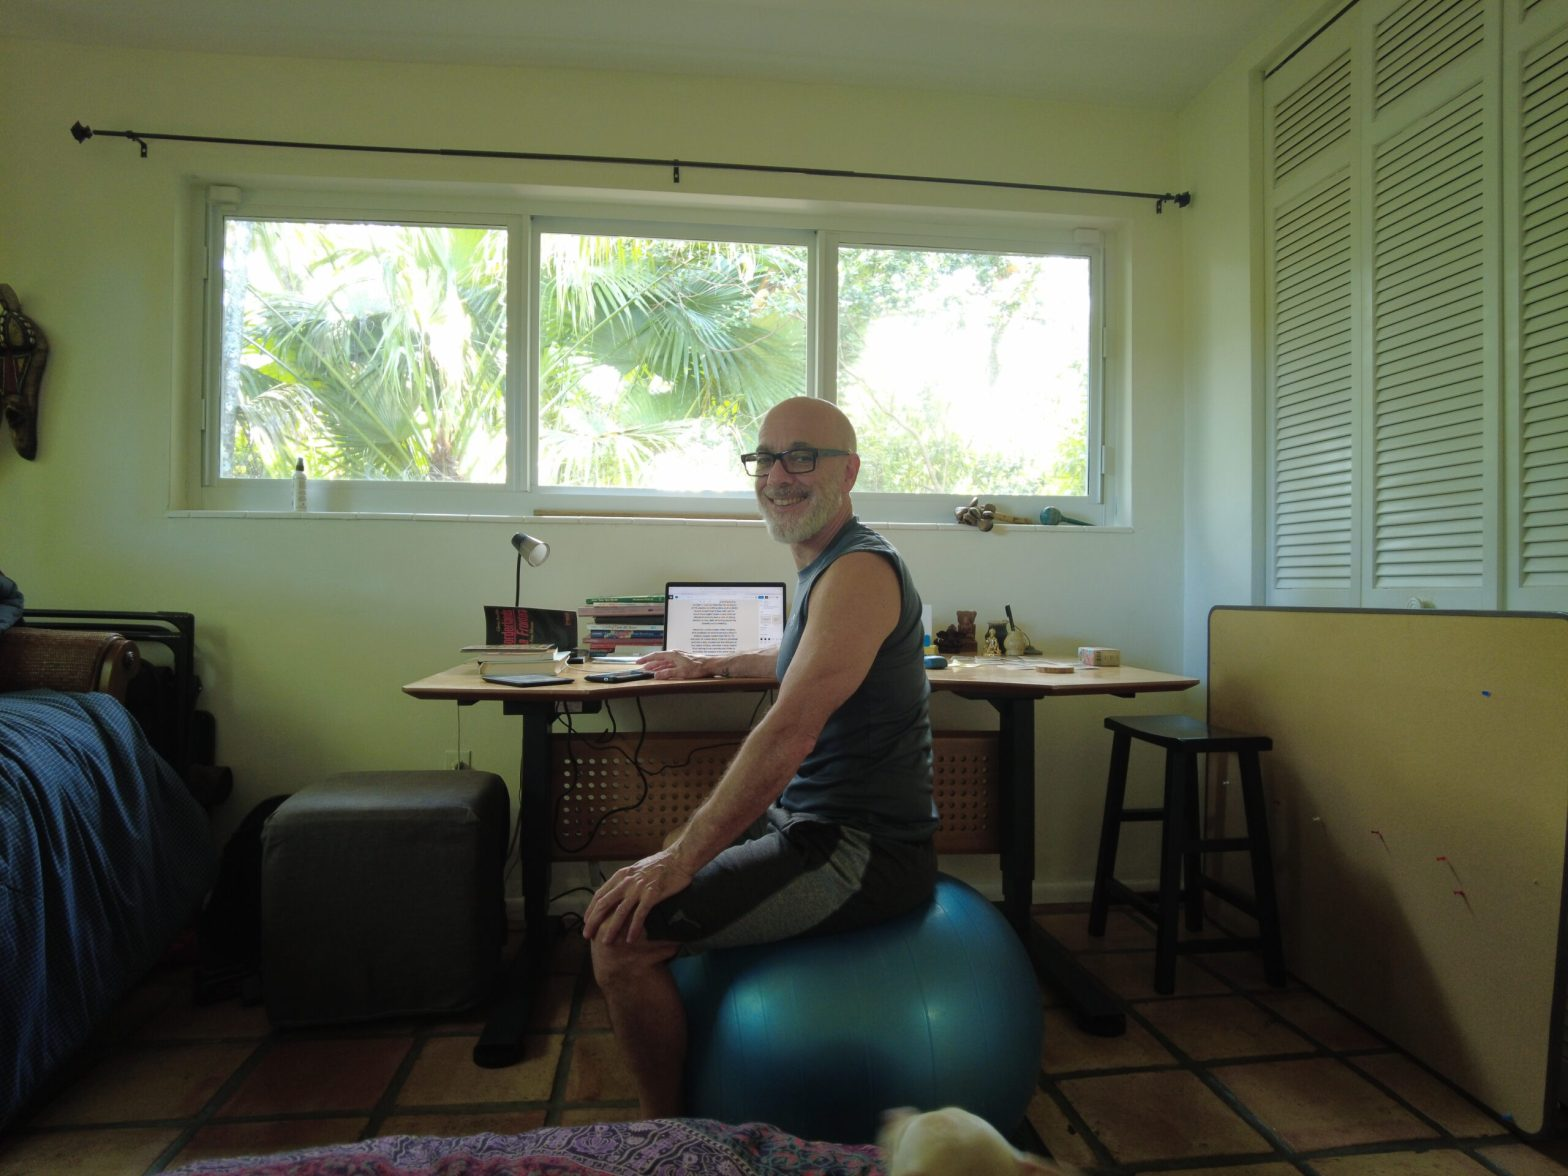 Standing desk and stability ball